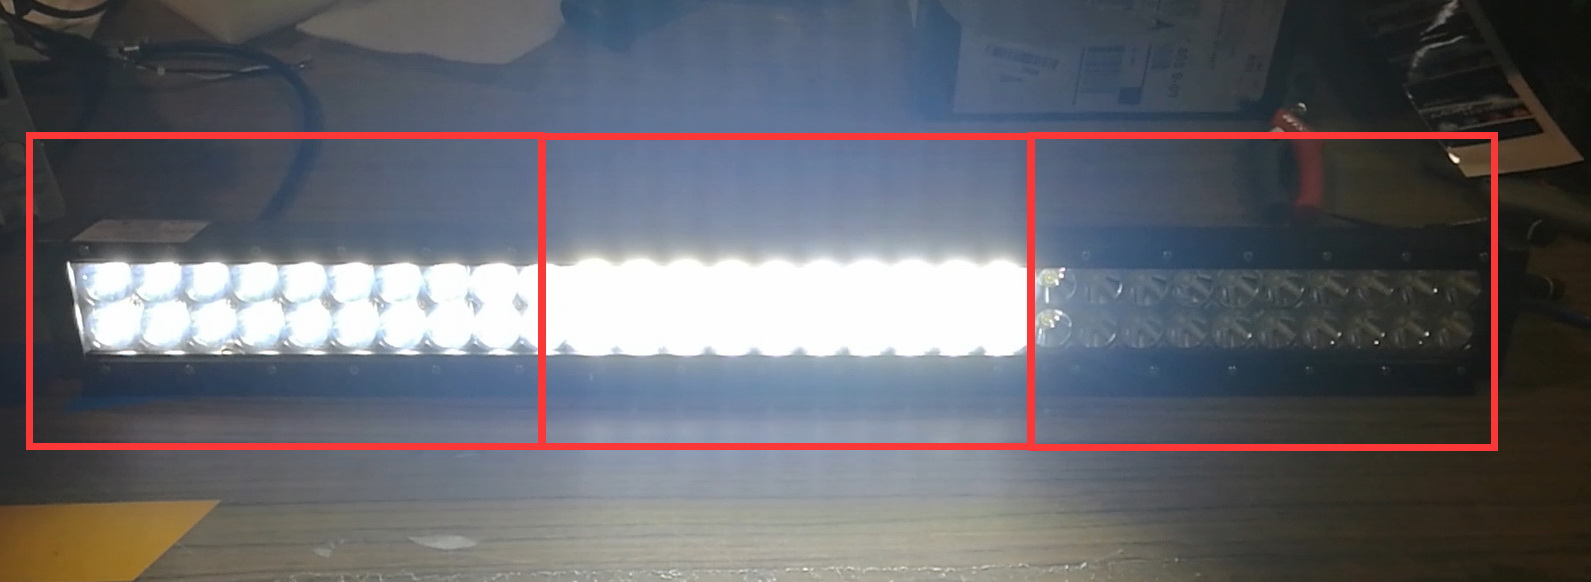 Why LED Light Bar Doesn't Fully Light Up